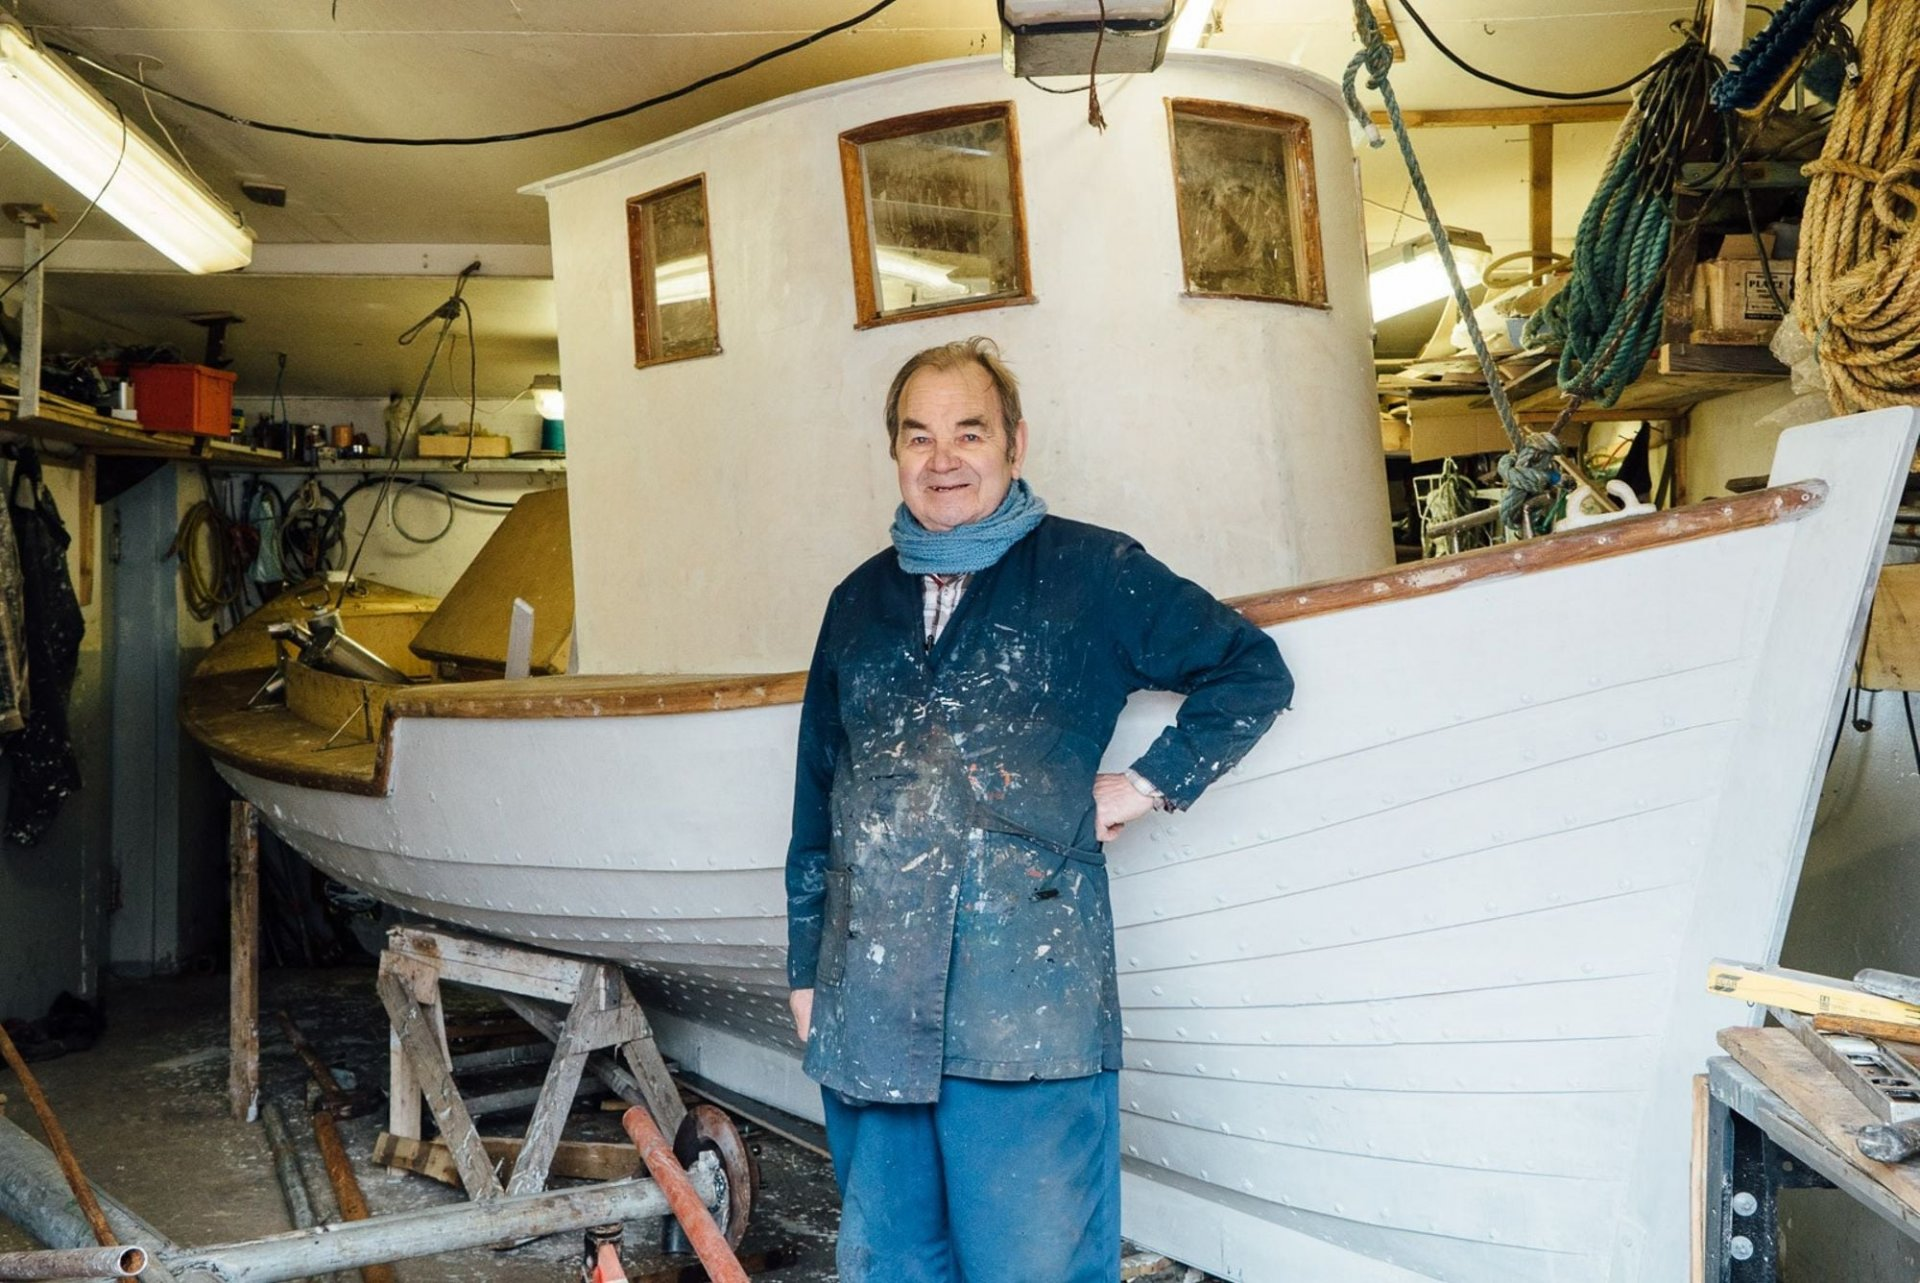 Beggi the Boat builder